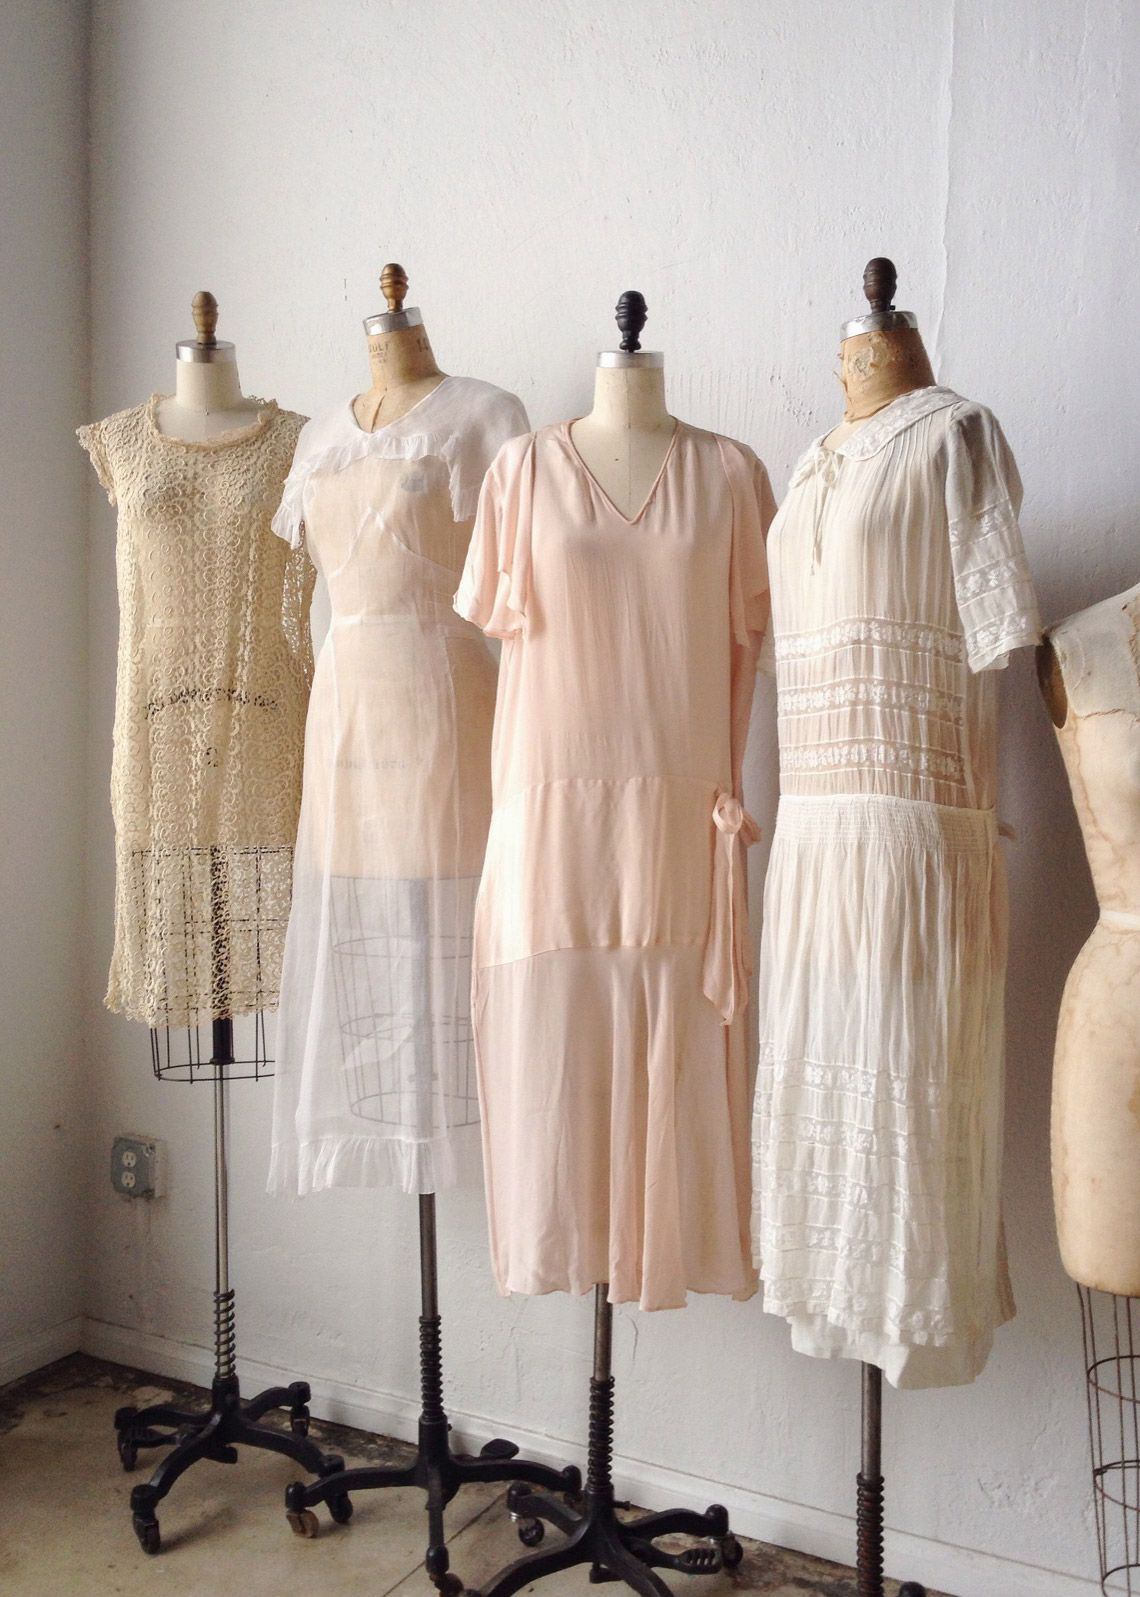 New Products Adored Vintage Vintage Clothing Online Store Vintage Clothing Online Vintage Inspired Outfits Vintage Outfits